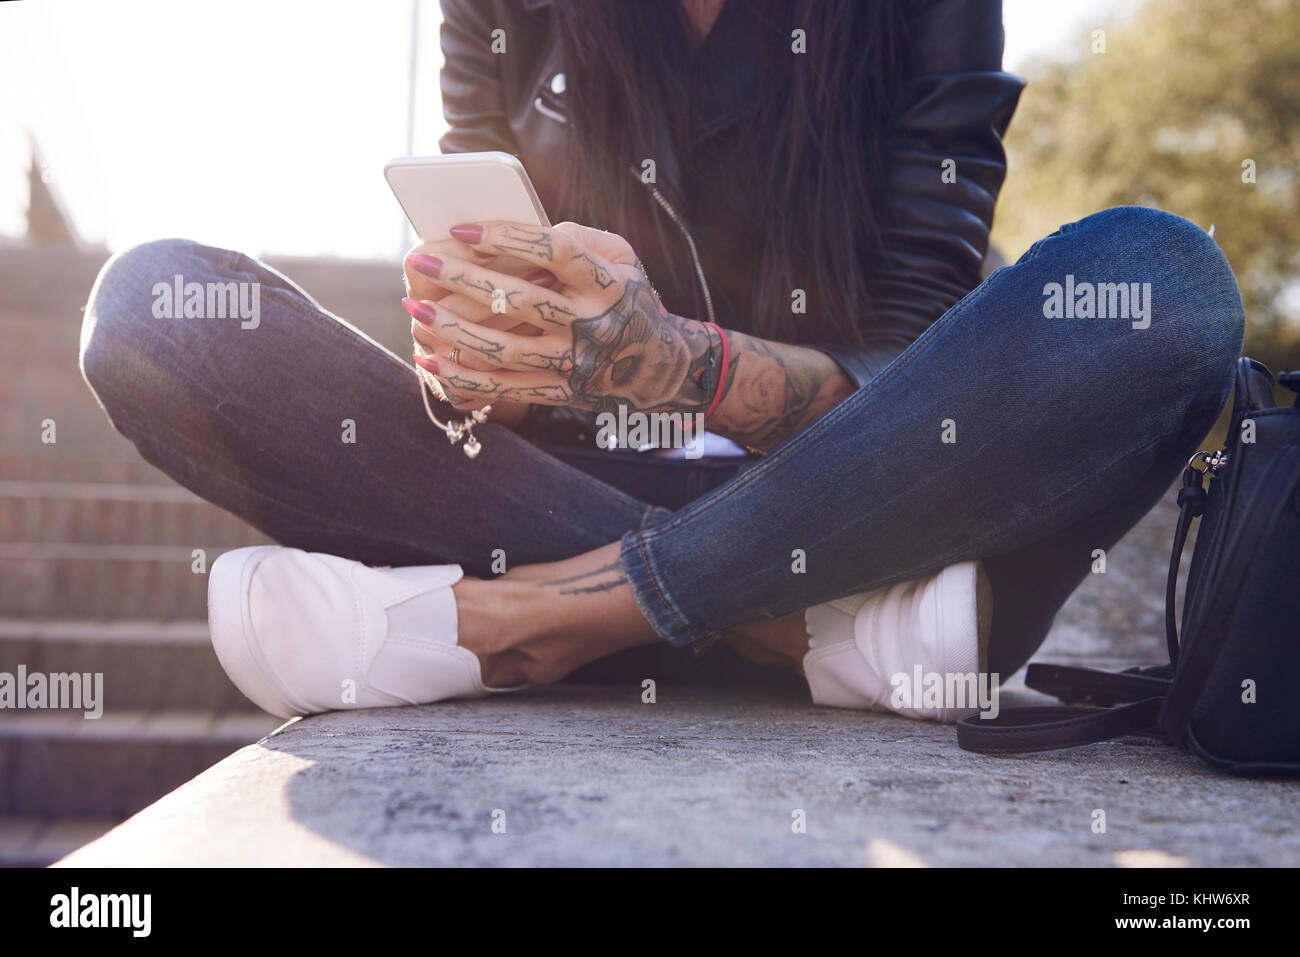 Young woman sitting on wall, using smartphone, tattoos on hand, low section - Stock Image